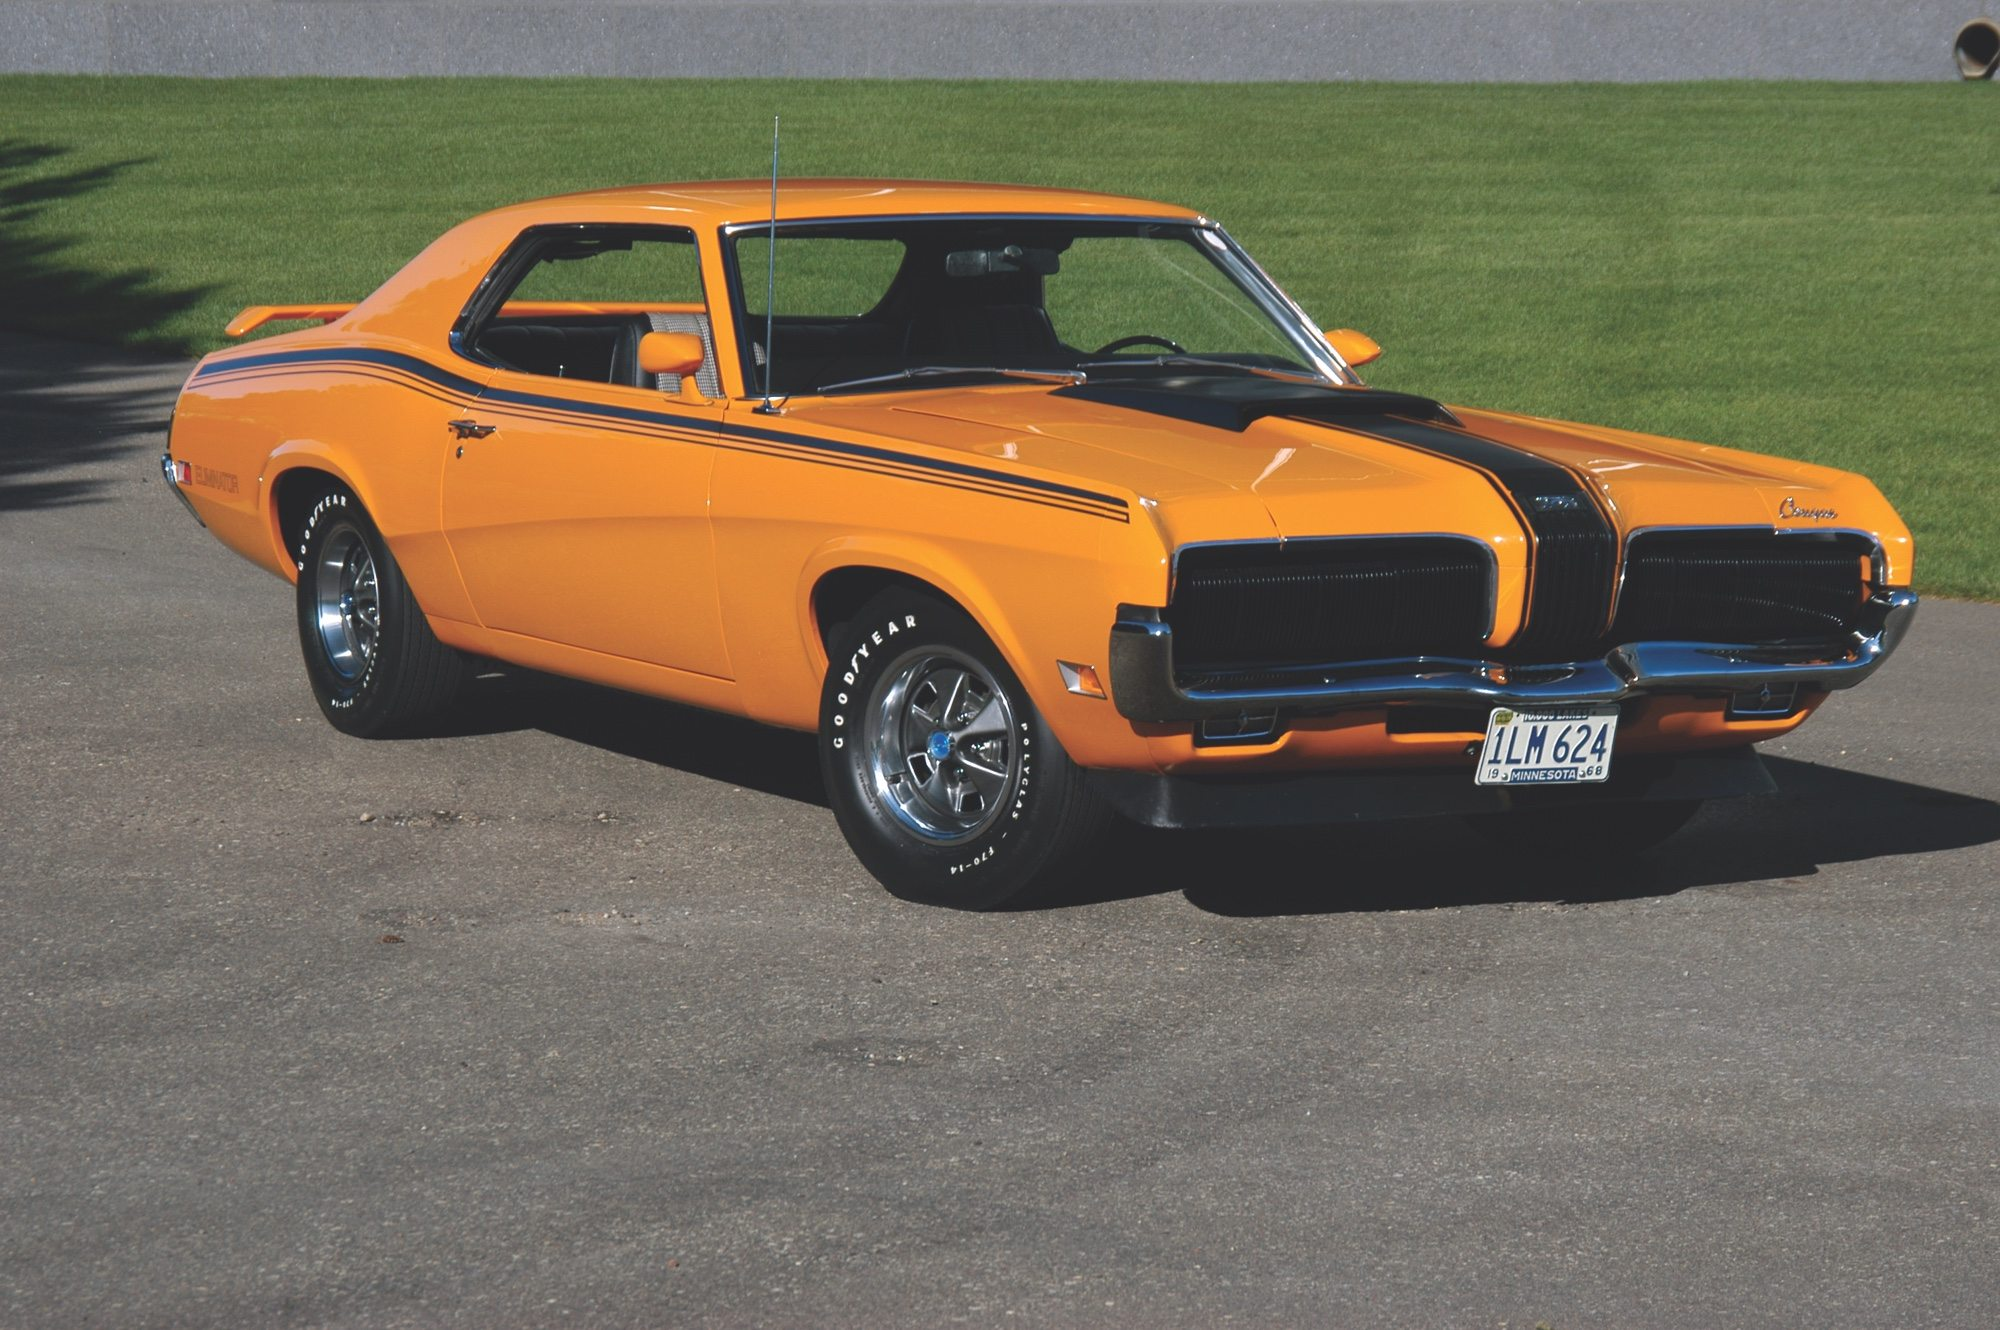 The 1970 Mercury Cougar Eliminator Was a Classy Mach One Mustang ...